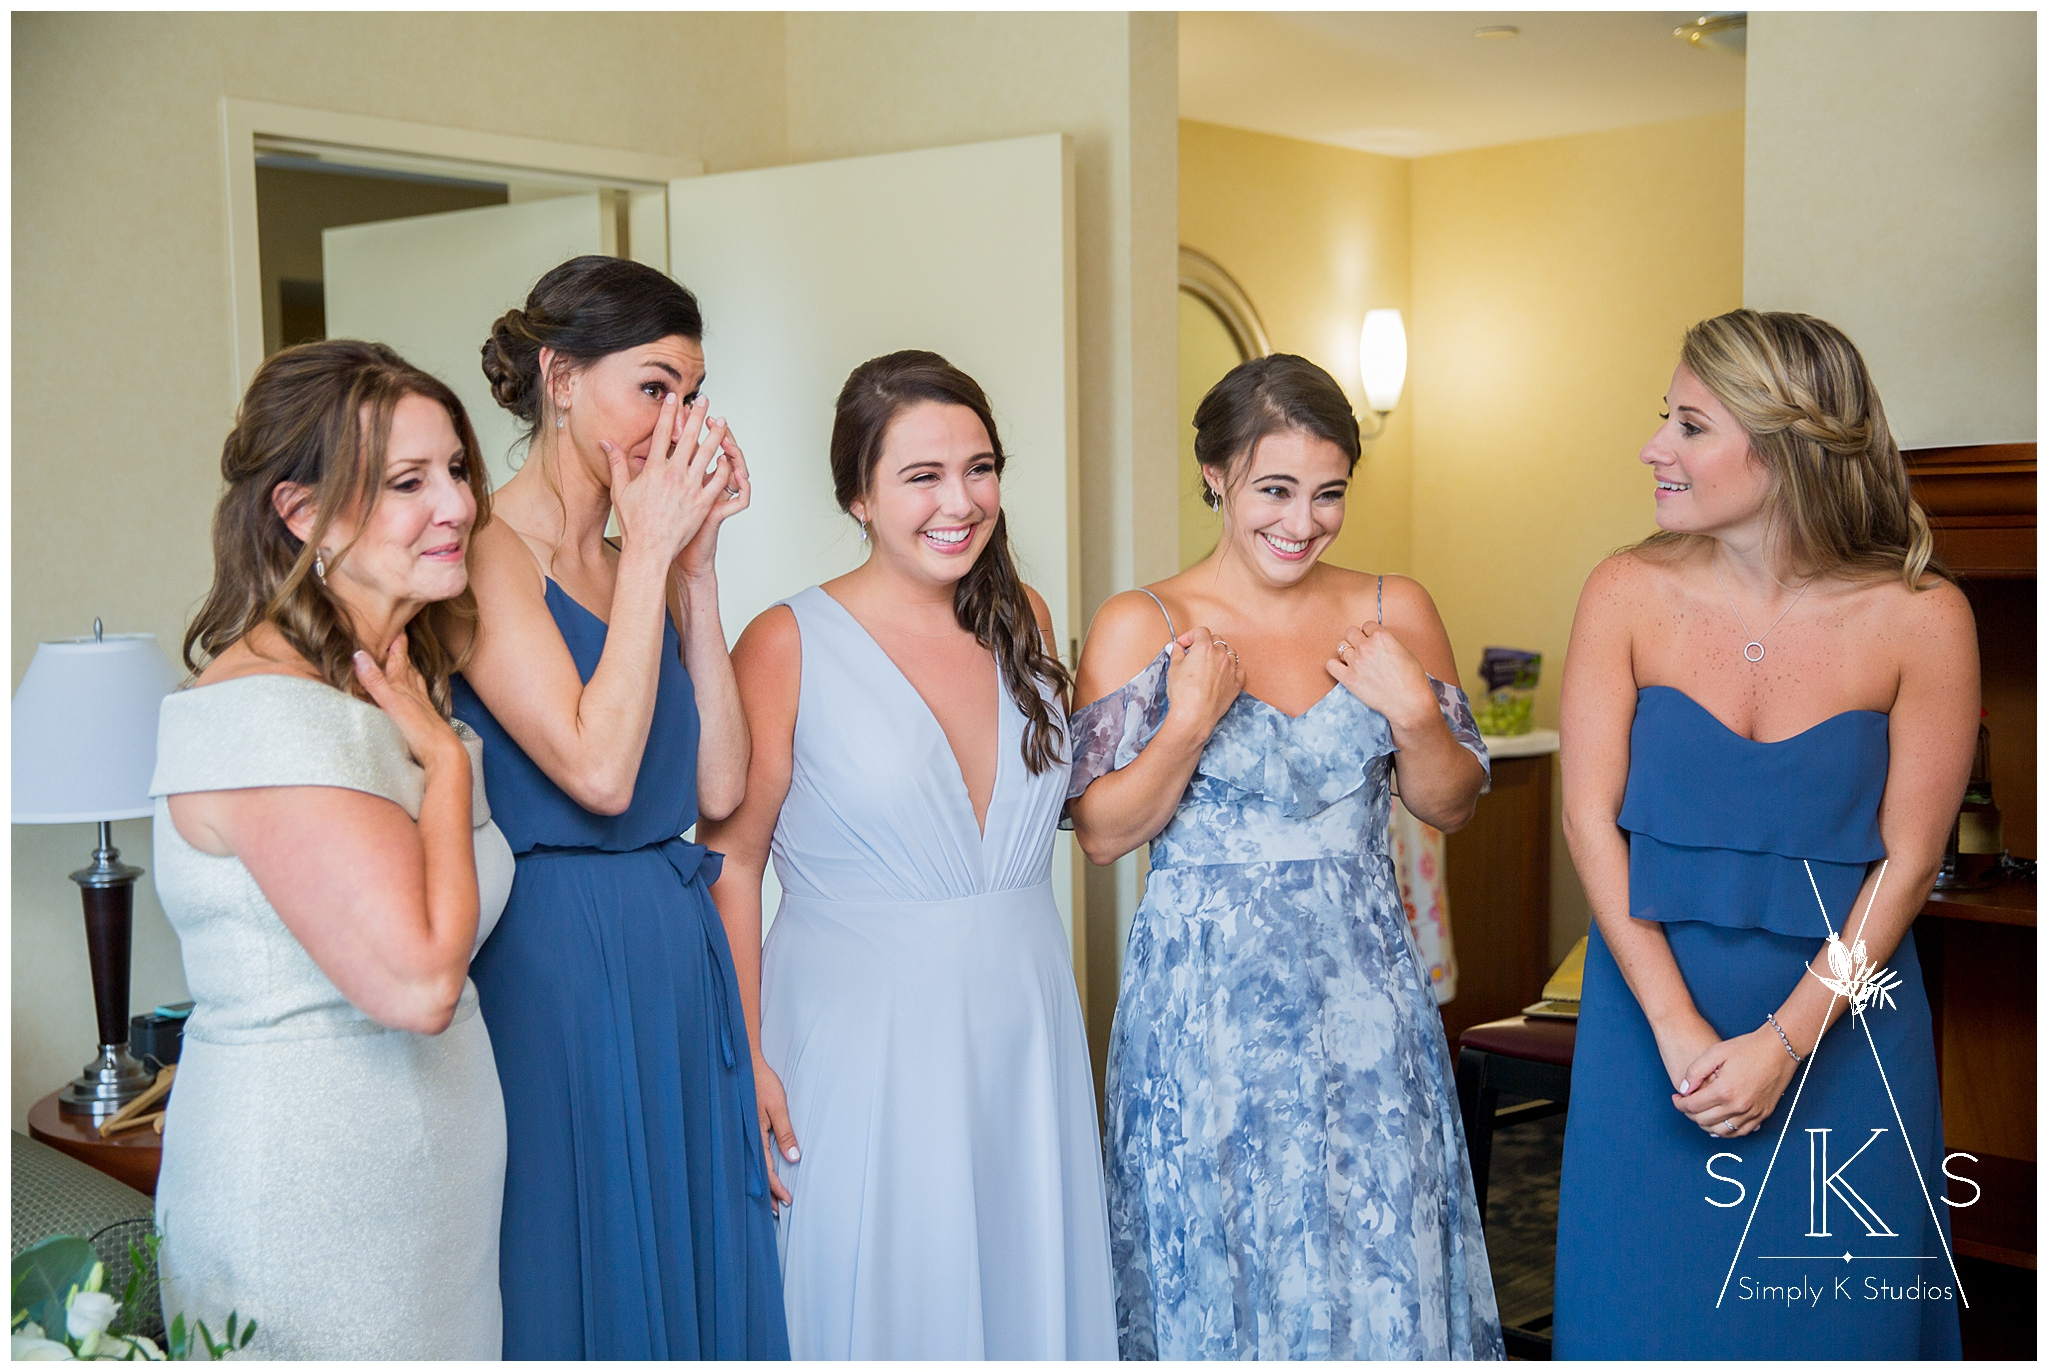 Bridesmaids with emotion at seeing the bride